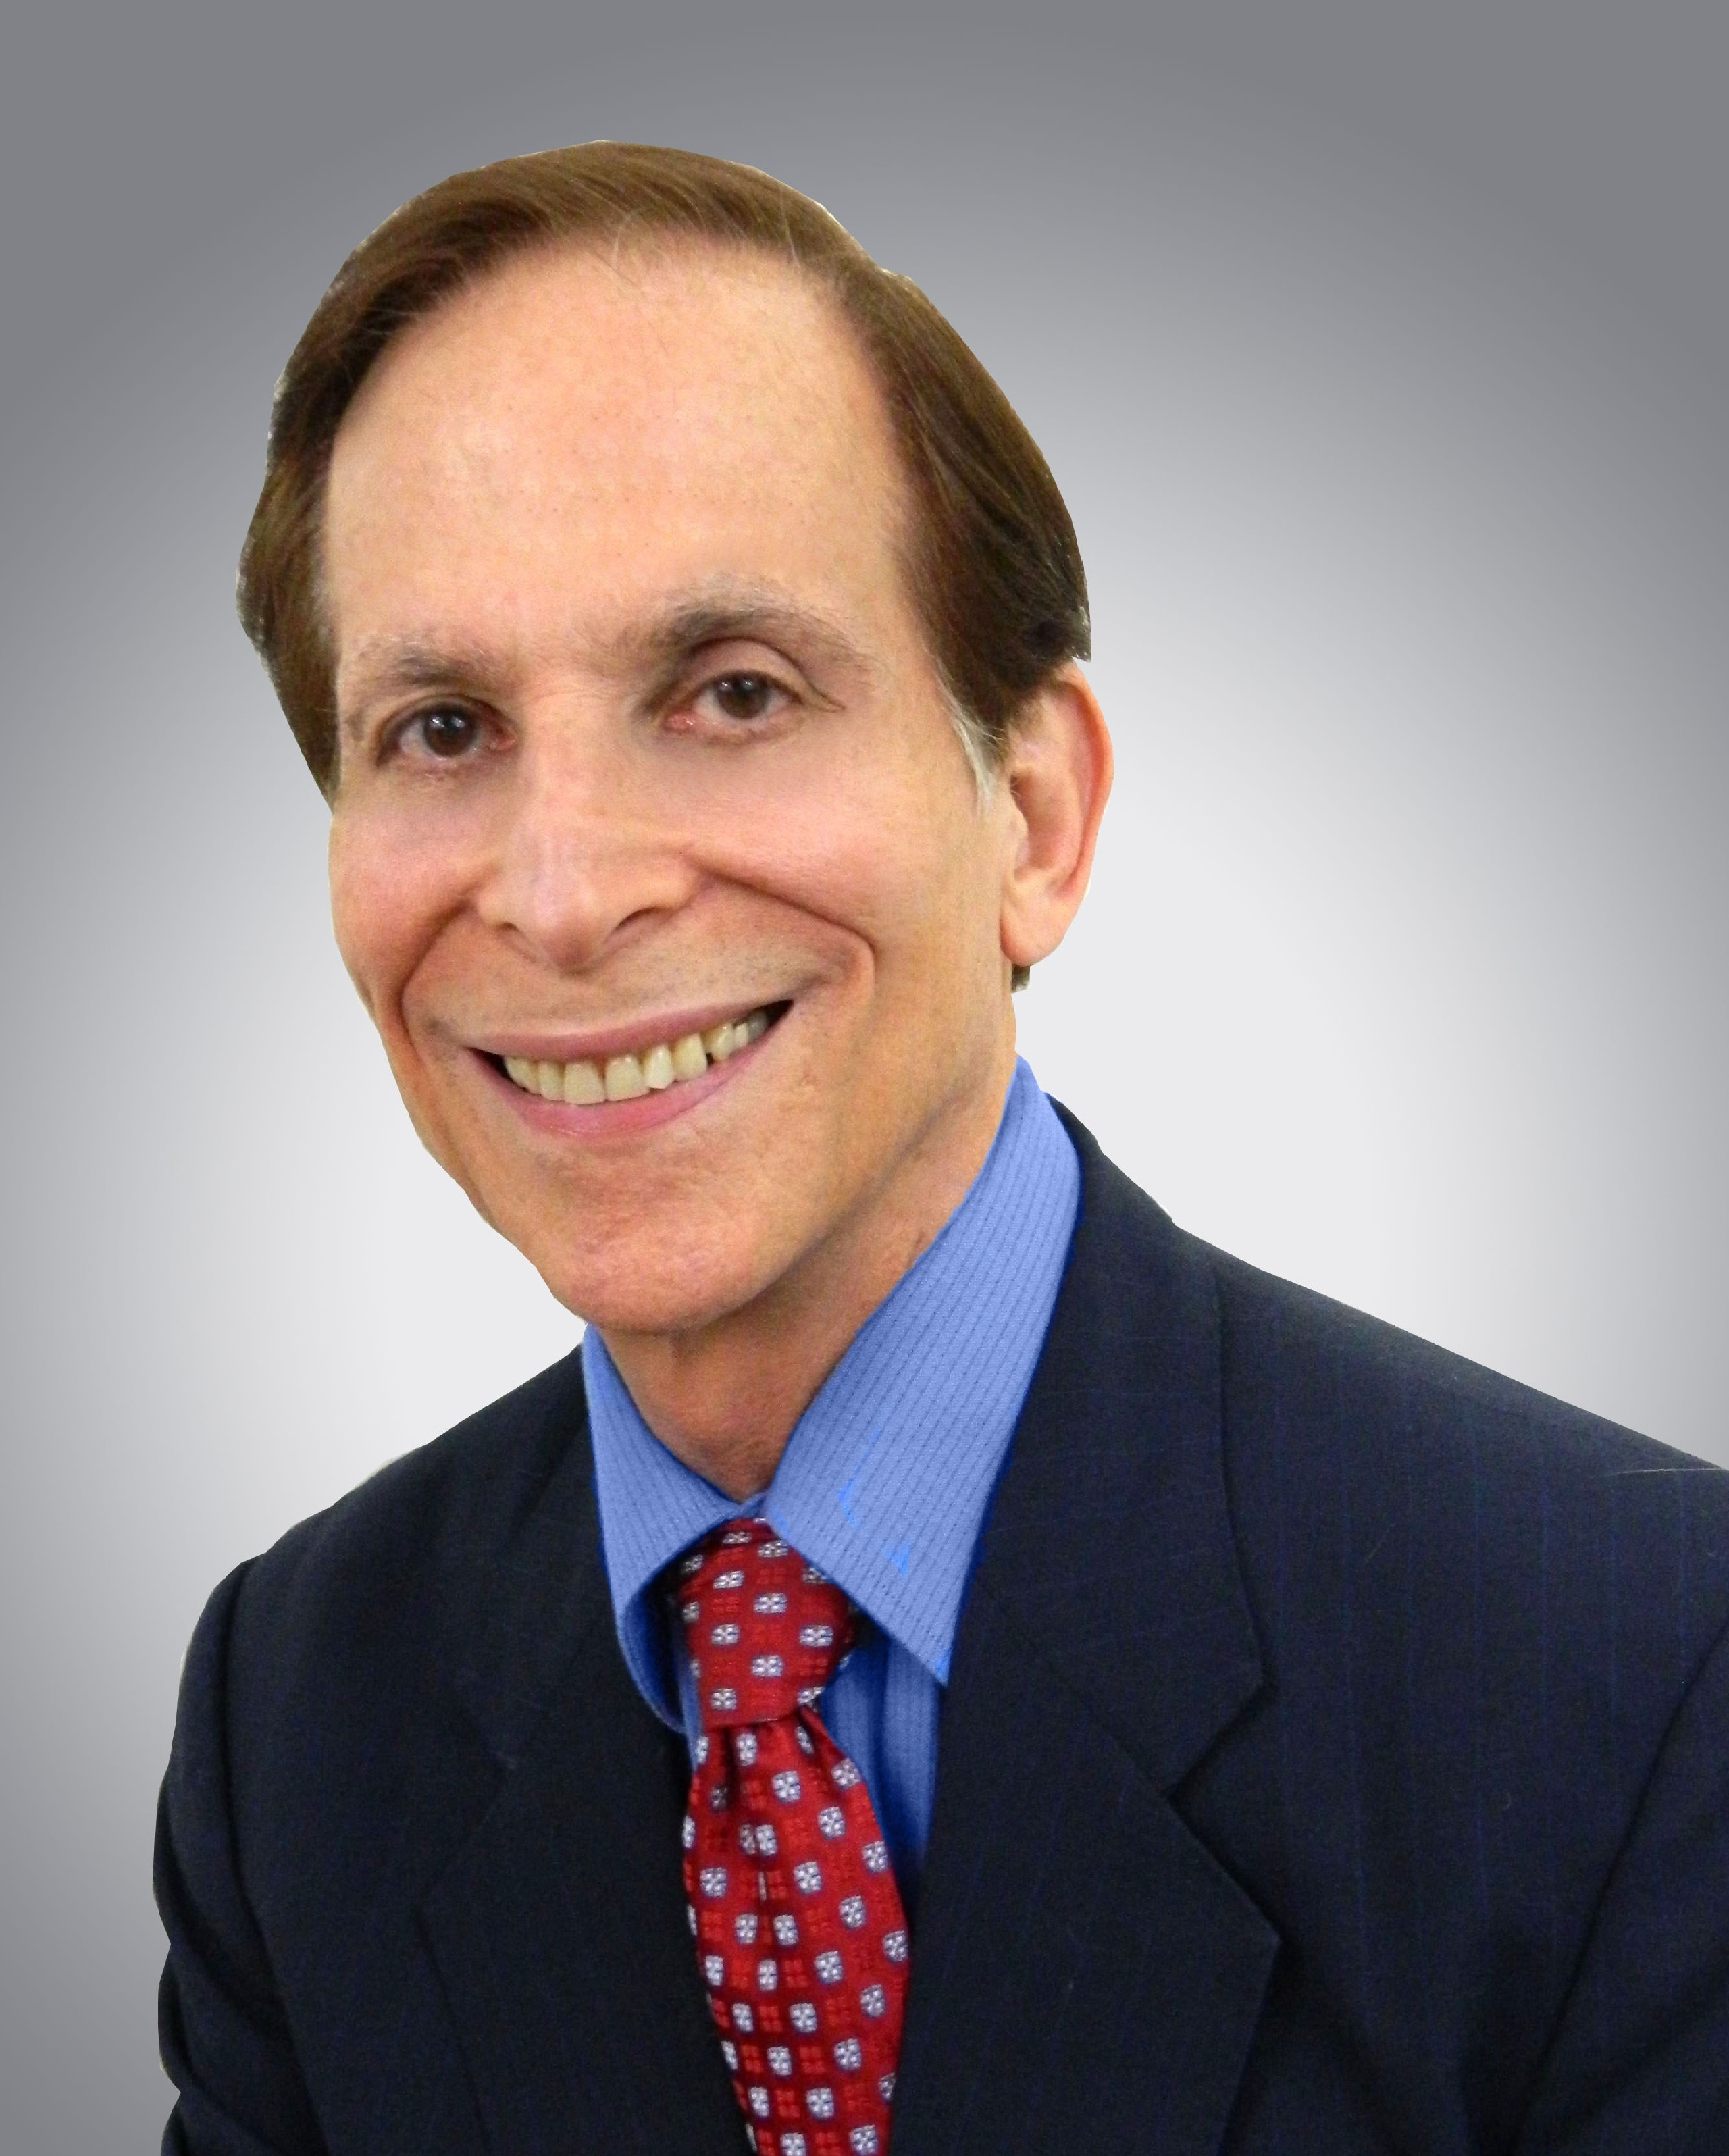 Dr. Jerry V. Teplitz - Certified Speaking Professional